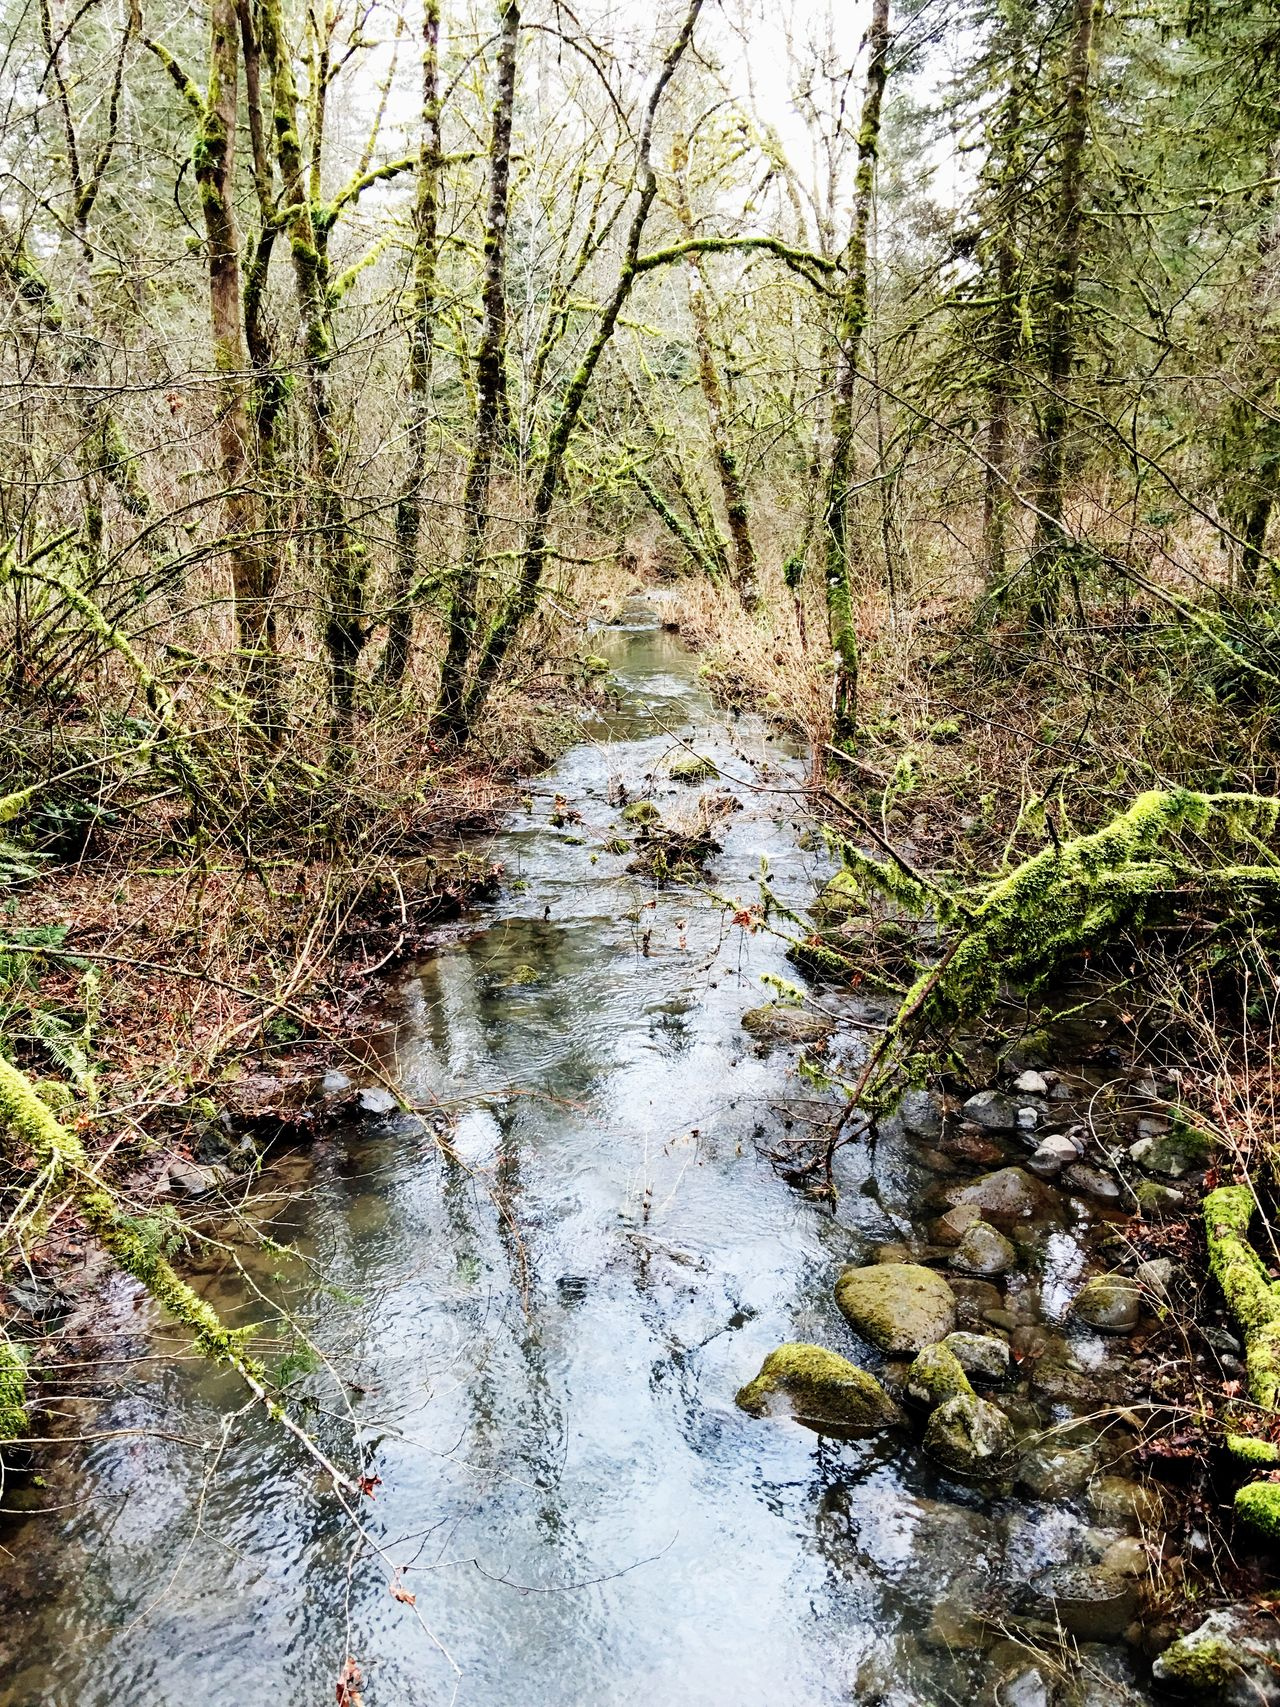 Nature Water Tranquility Tranquil Scene Tree Scenics Non-urban Scene Beauty In Nature Outdoors Day No People Growth Forest Grass Stream - Flowing Water Path In Nature Pathways Outdoor Pictures Nature_collection Nature Photography Trees And Nature Tranquility Nature Meaning Of Life Creekside Trail